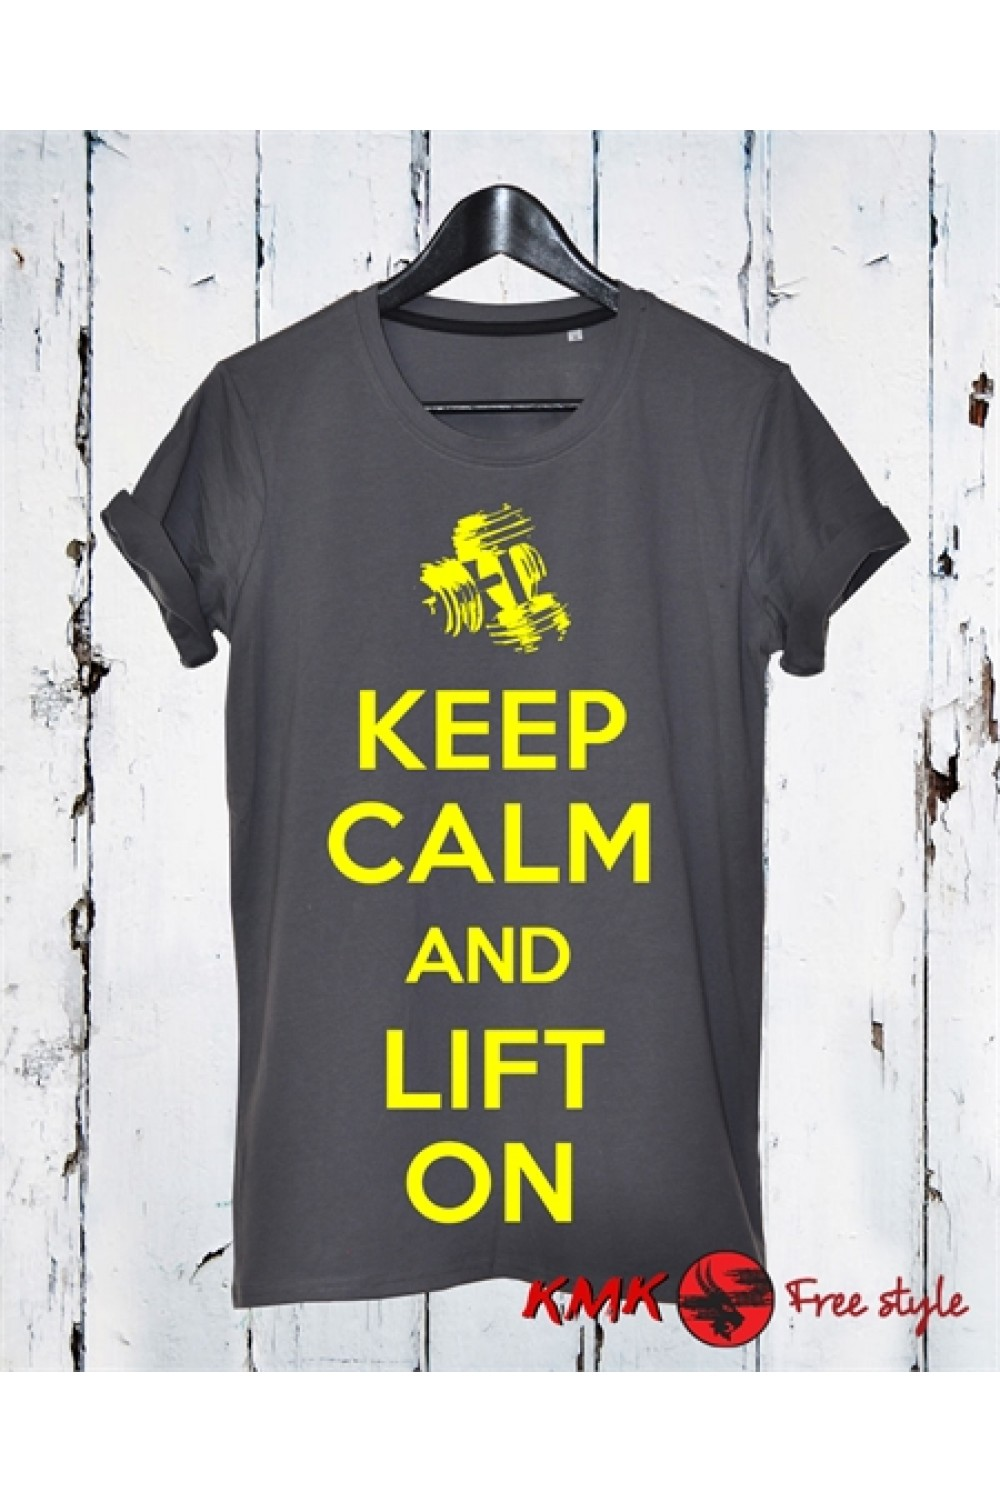 Keep calm Printed T shirt | Lift on Tee | Gym T-shirt | Sports Tee